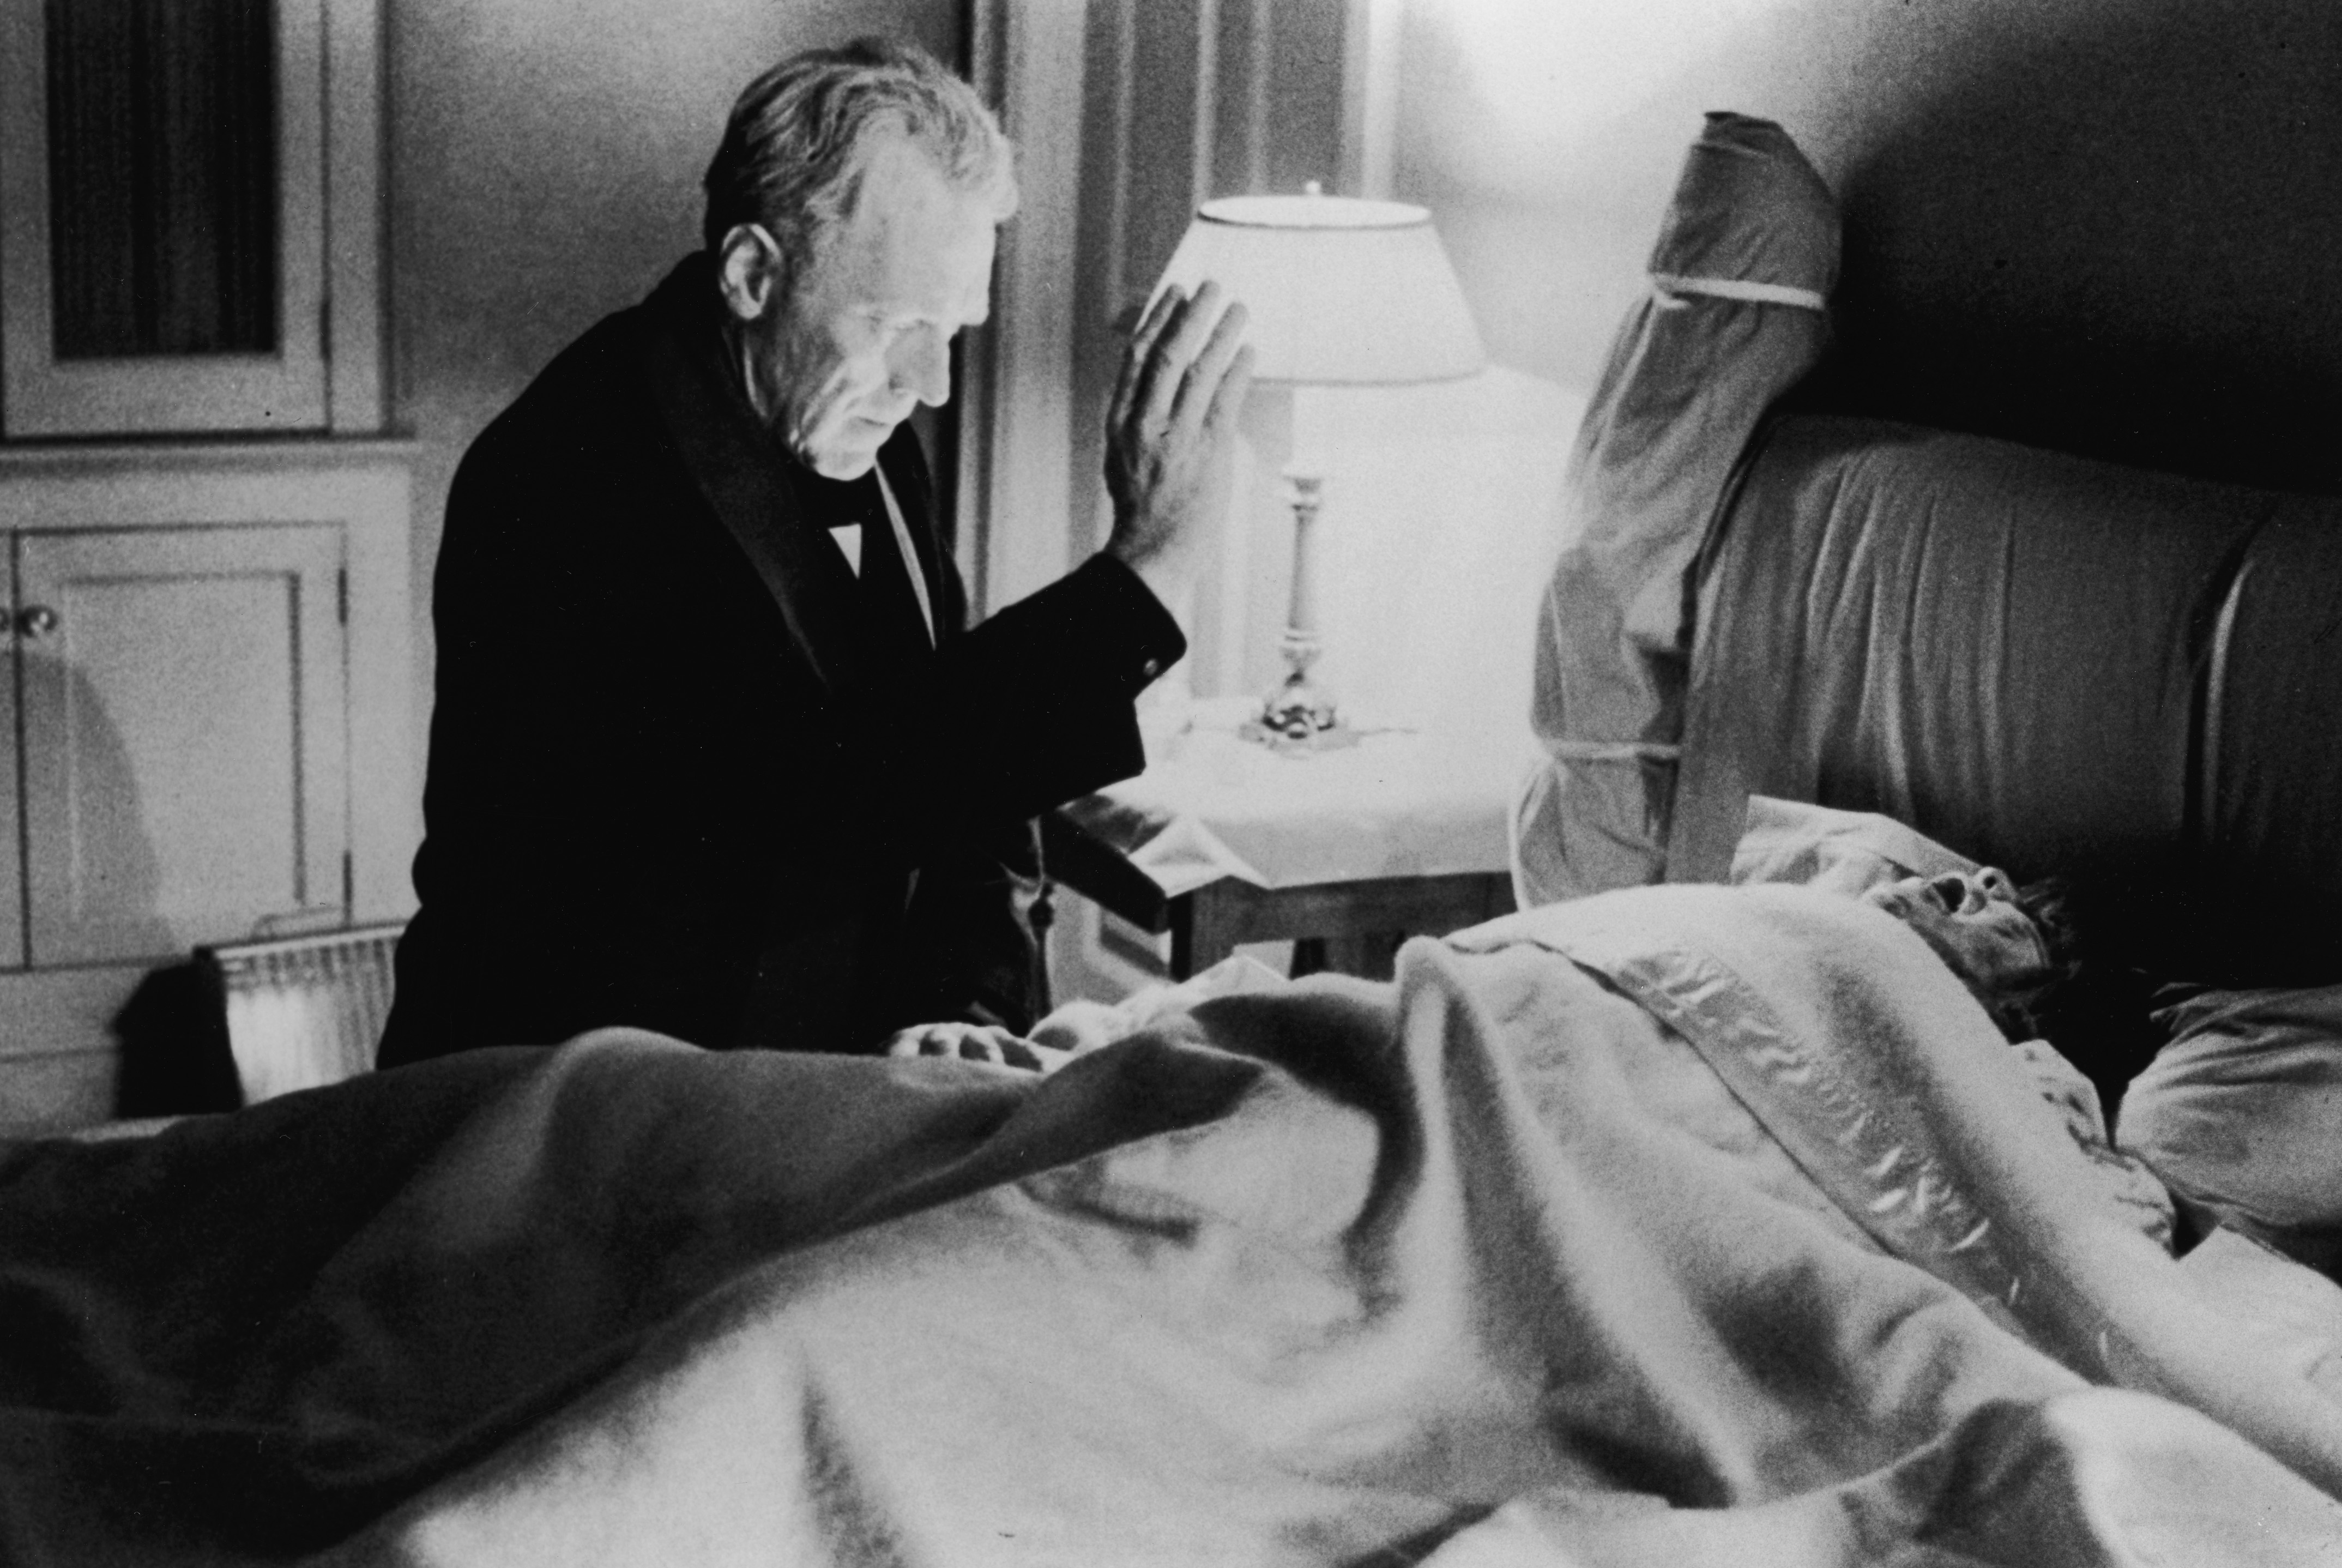 A still from the film The Exorcist